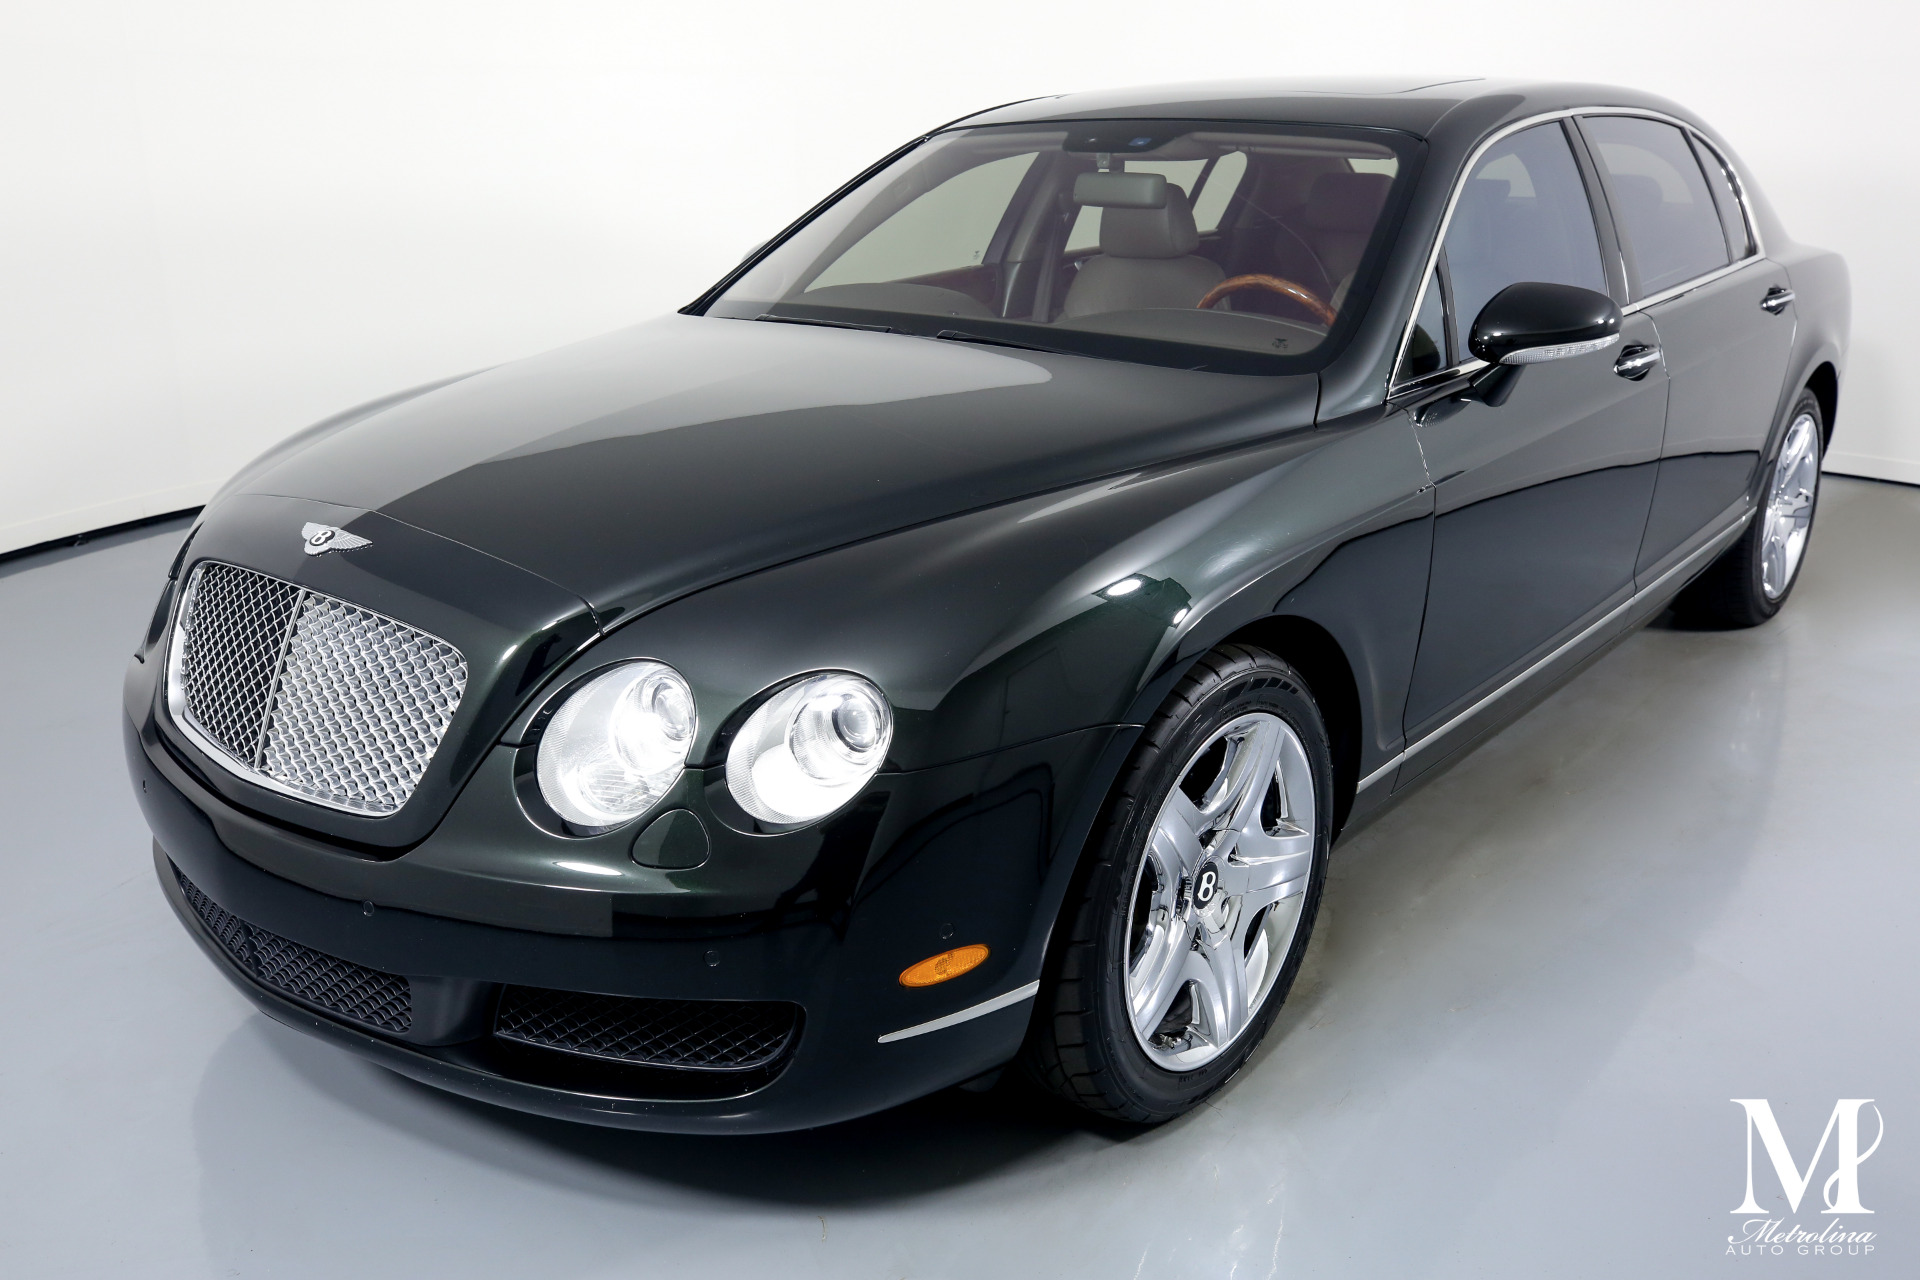 Used 2006 Bentley Continental Flying Spur for sale $37,996 at Metrolina Auto Group in Charlotte NC 28217 - 4